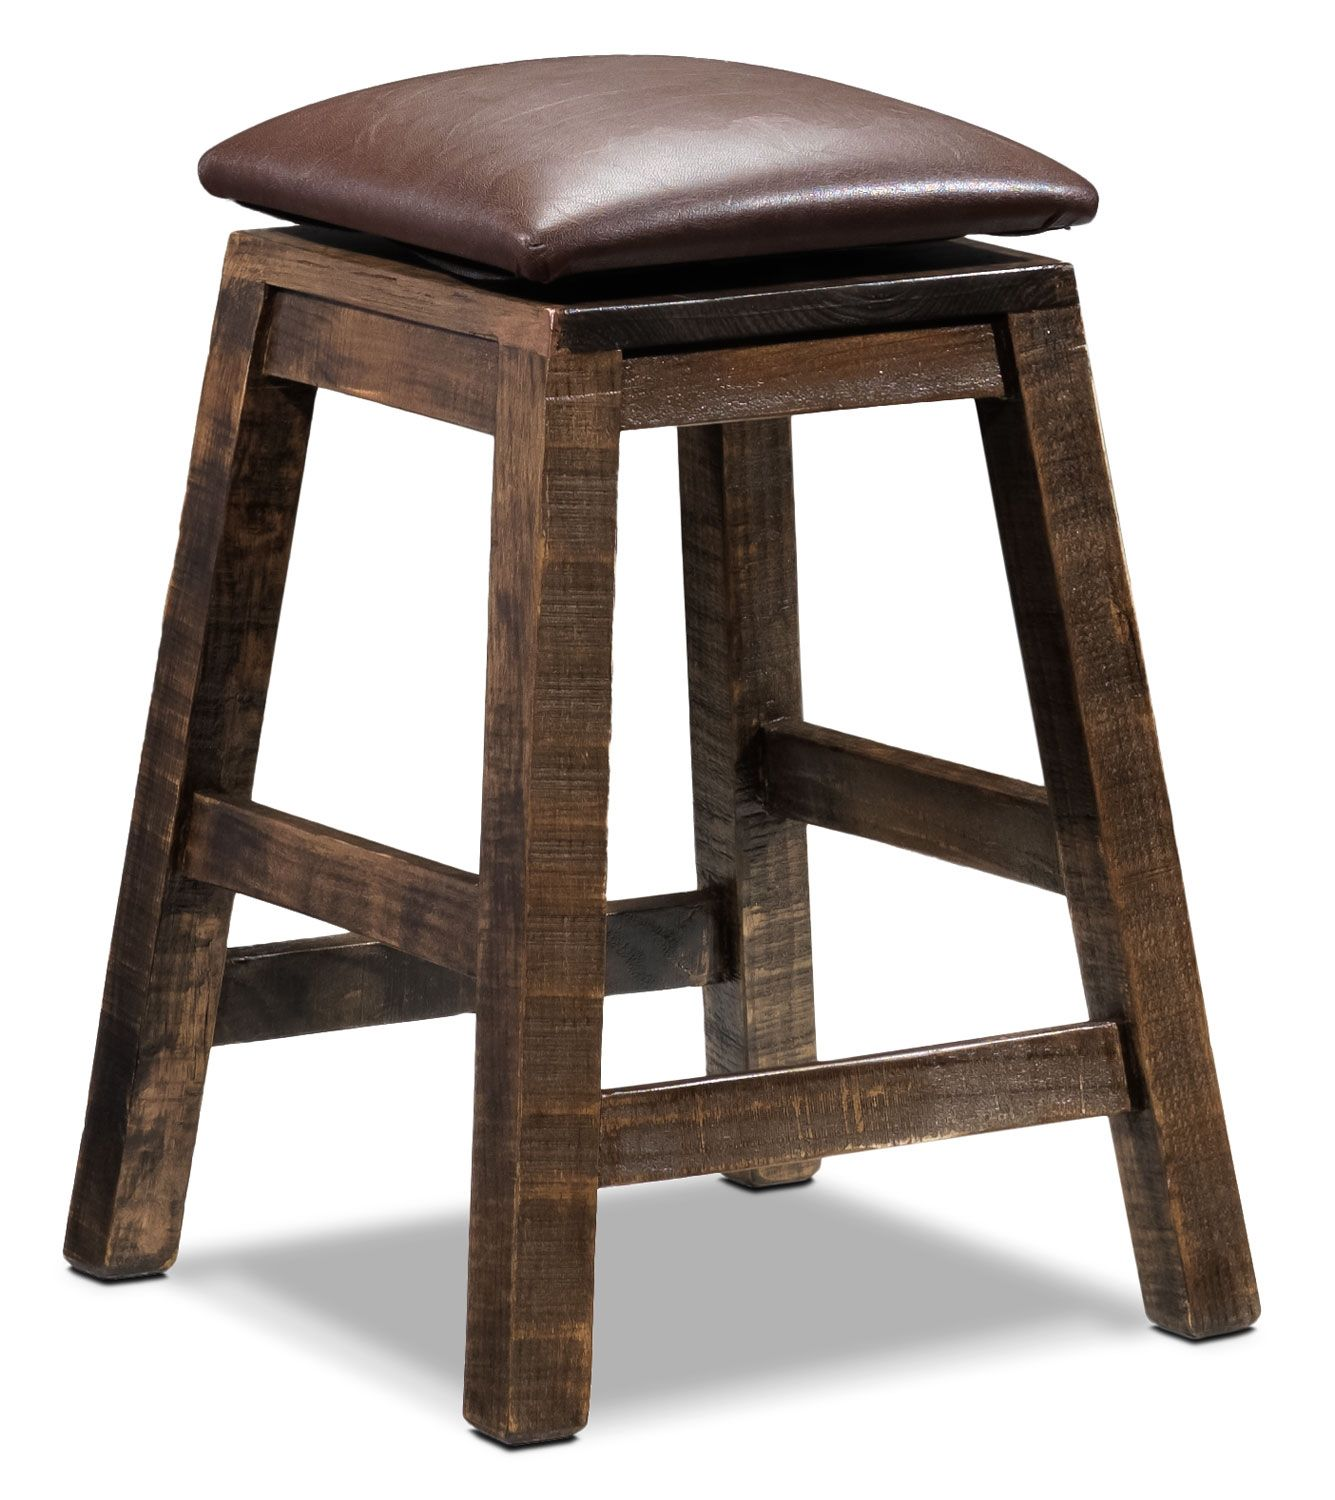 Dining Room Furniture-The Allison Pine Collection-Allison Pine Pub Table